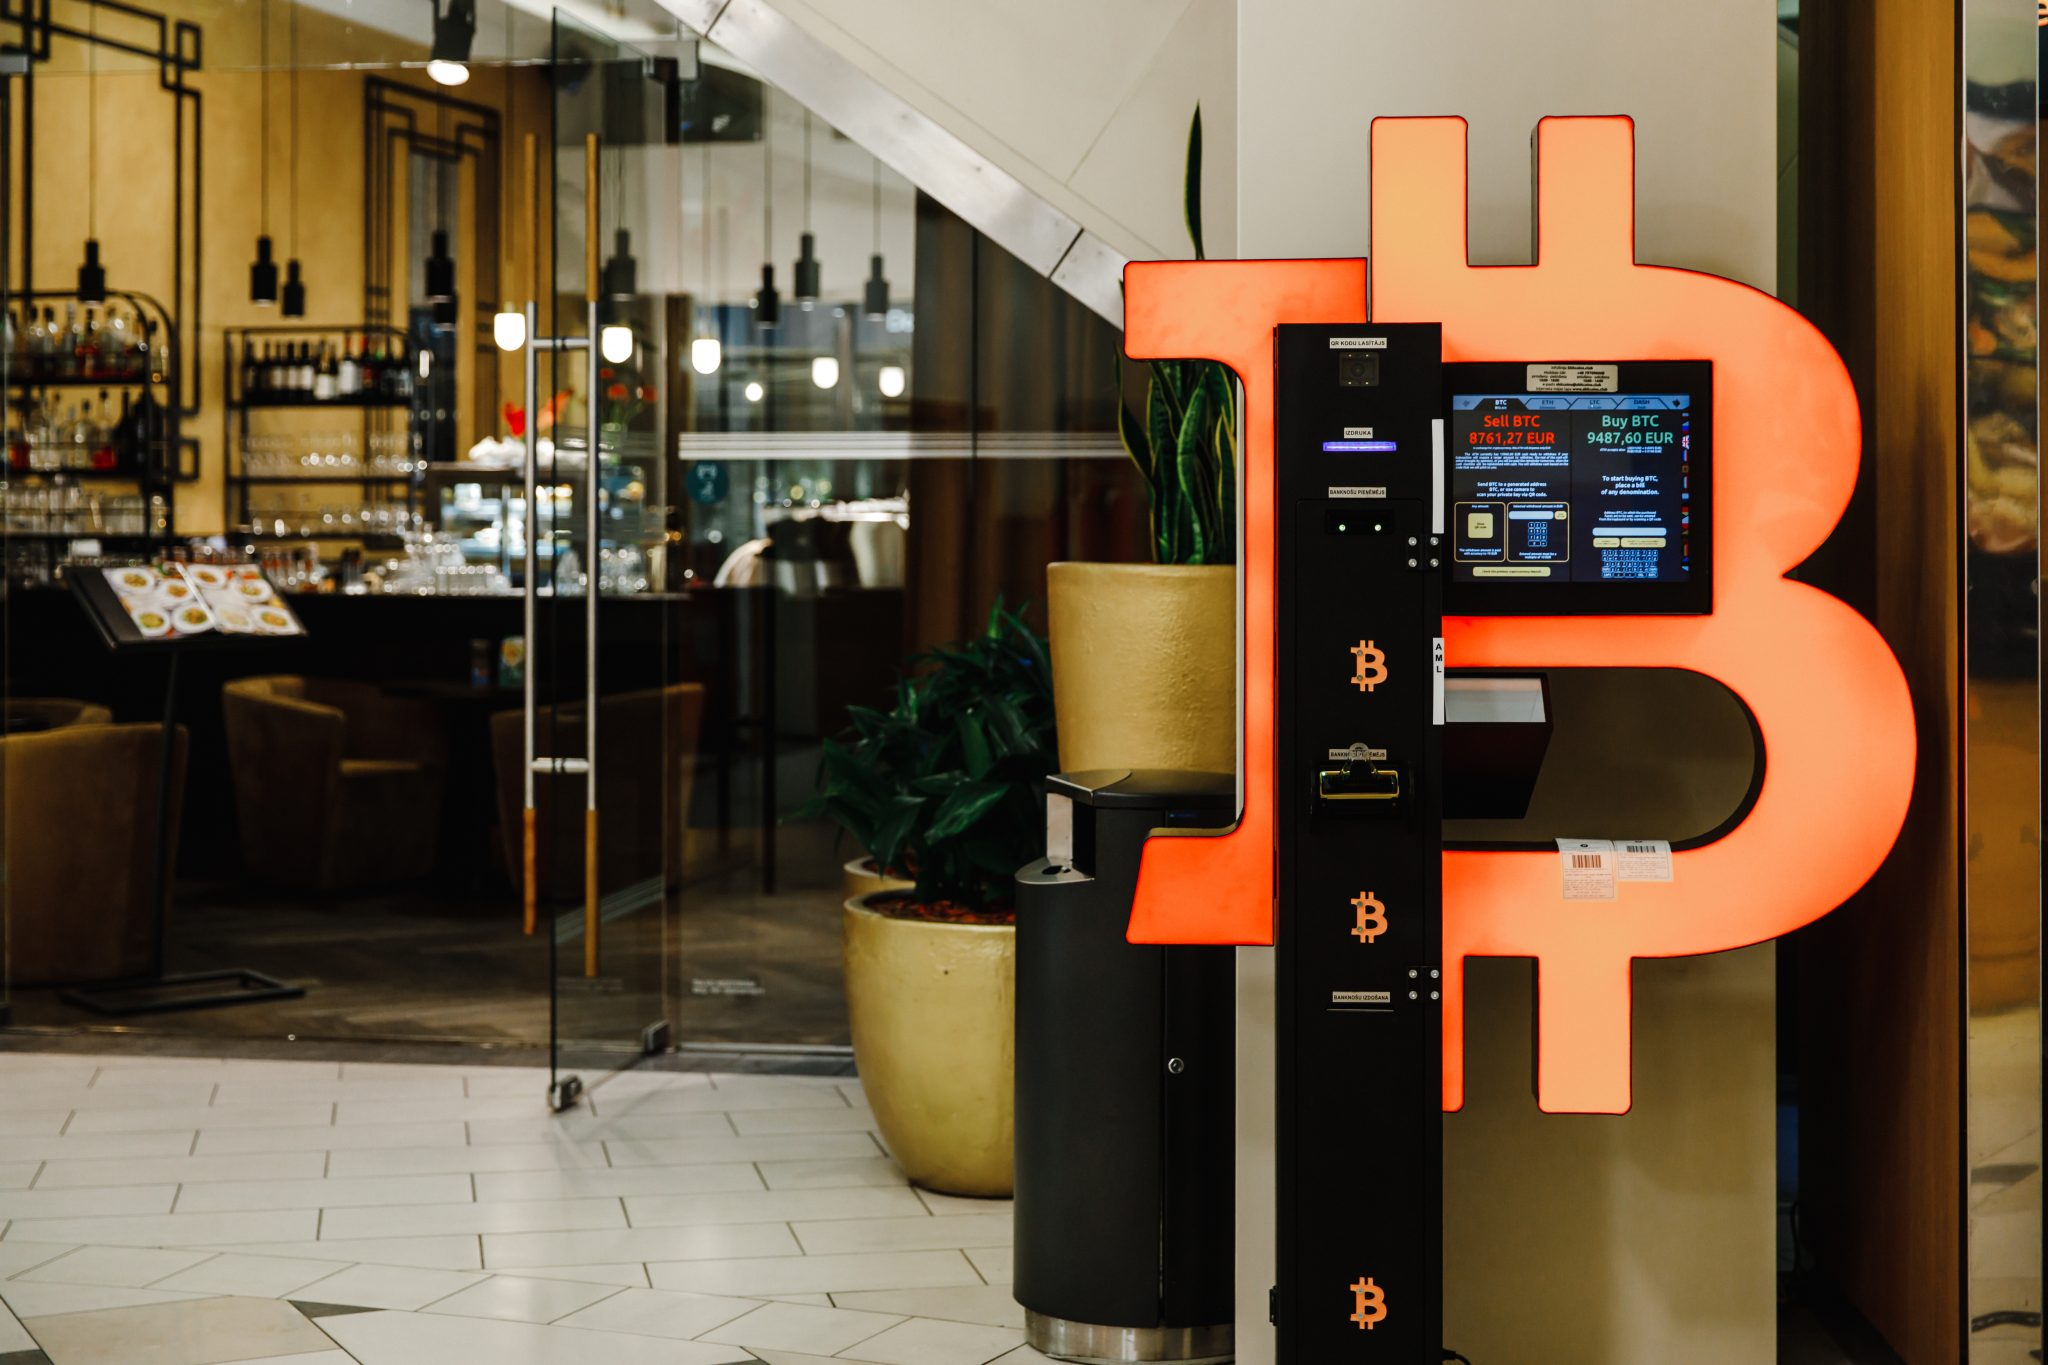 Bitcoin ATM machine in mall for cryptocurrency exchange